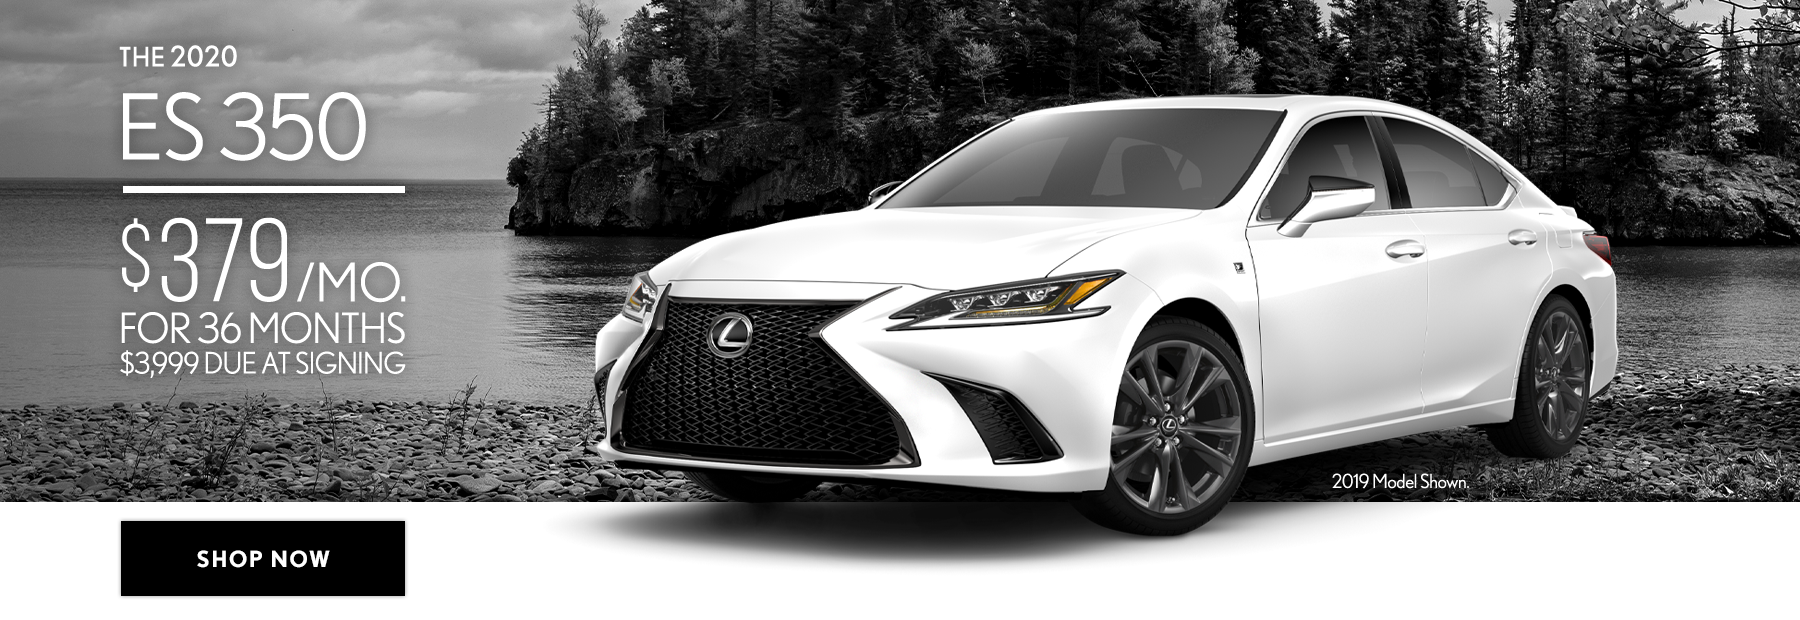 lease-special-new-2019-lexus-es-350-cincinnati-ohio